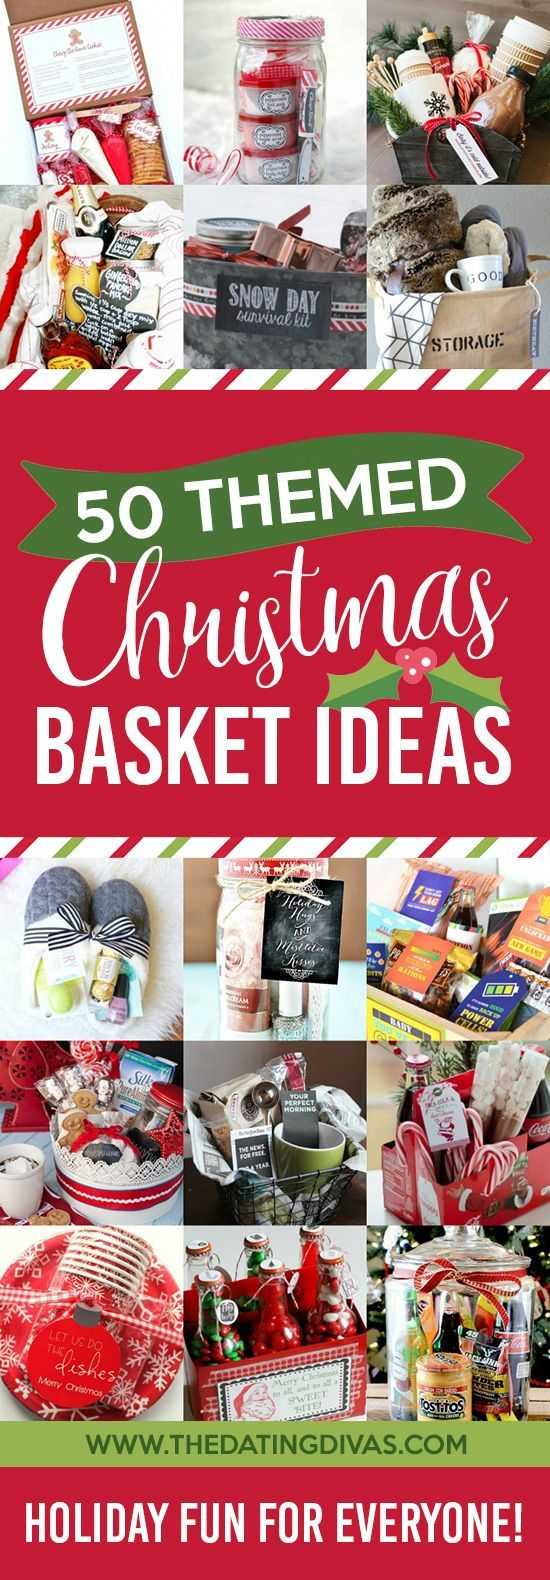 25+ unique Holiday gift baskets ideas on Pinterest | Christmas ...